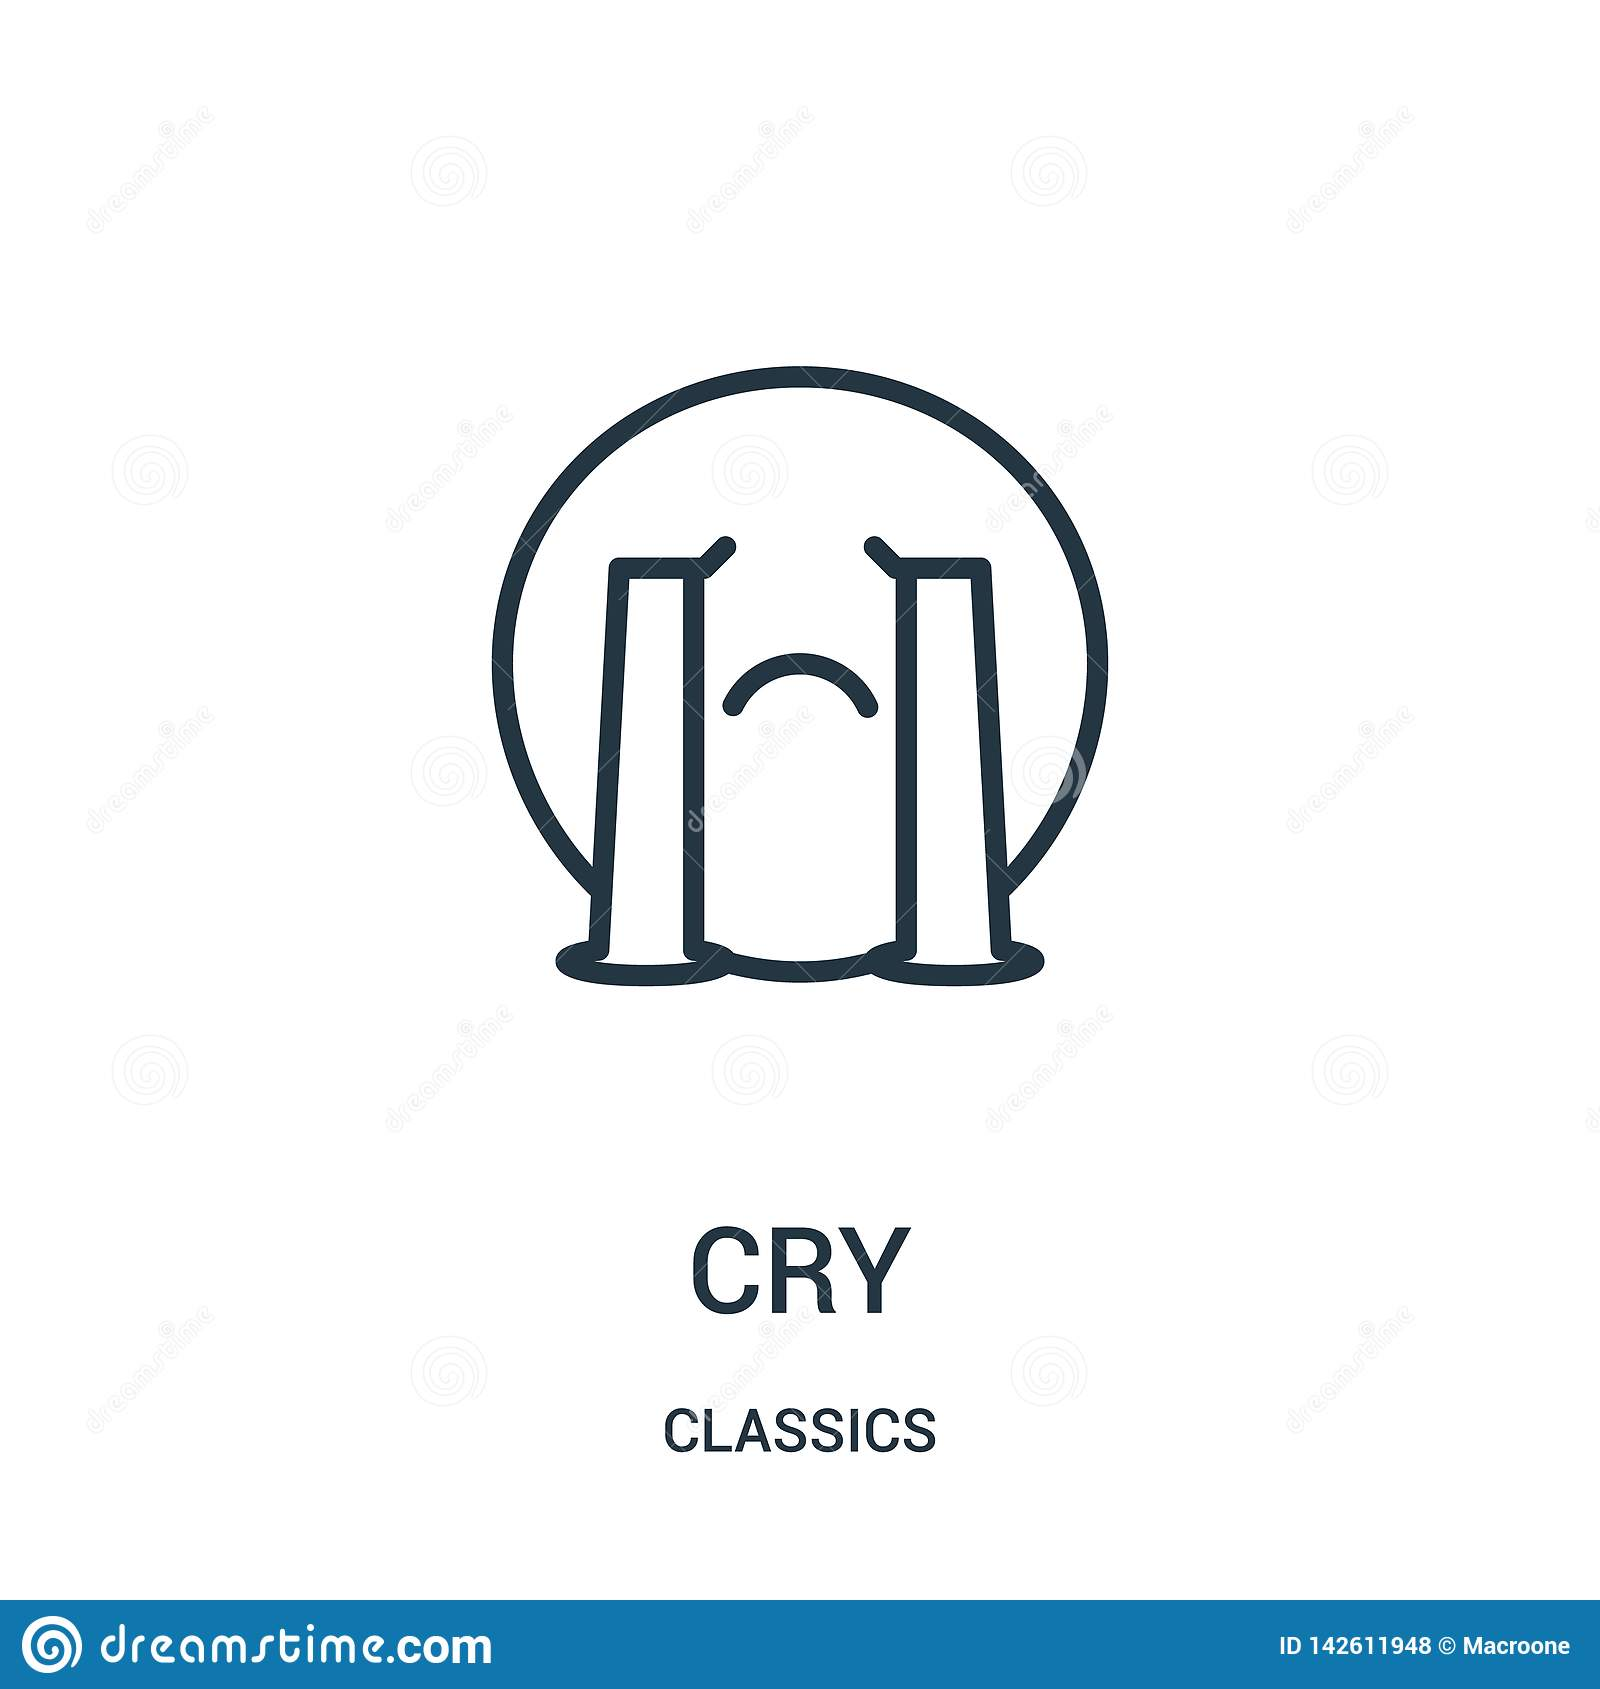 cry icon vector from classics collection. Thin line cry outline icon vector illustration. Linear symbol